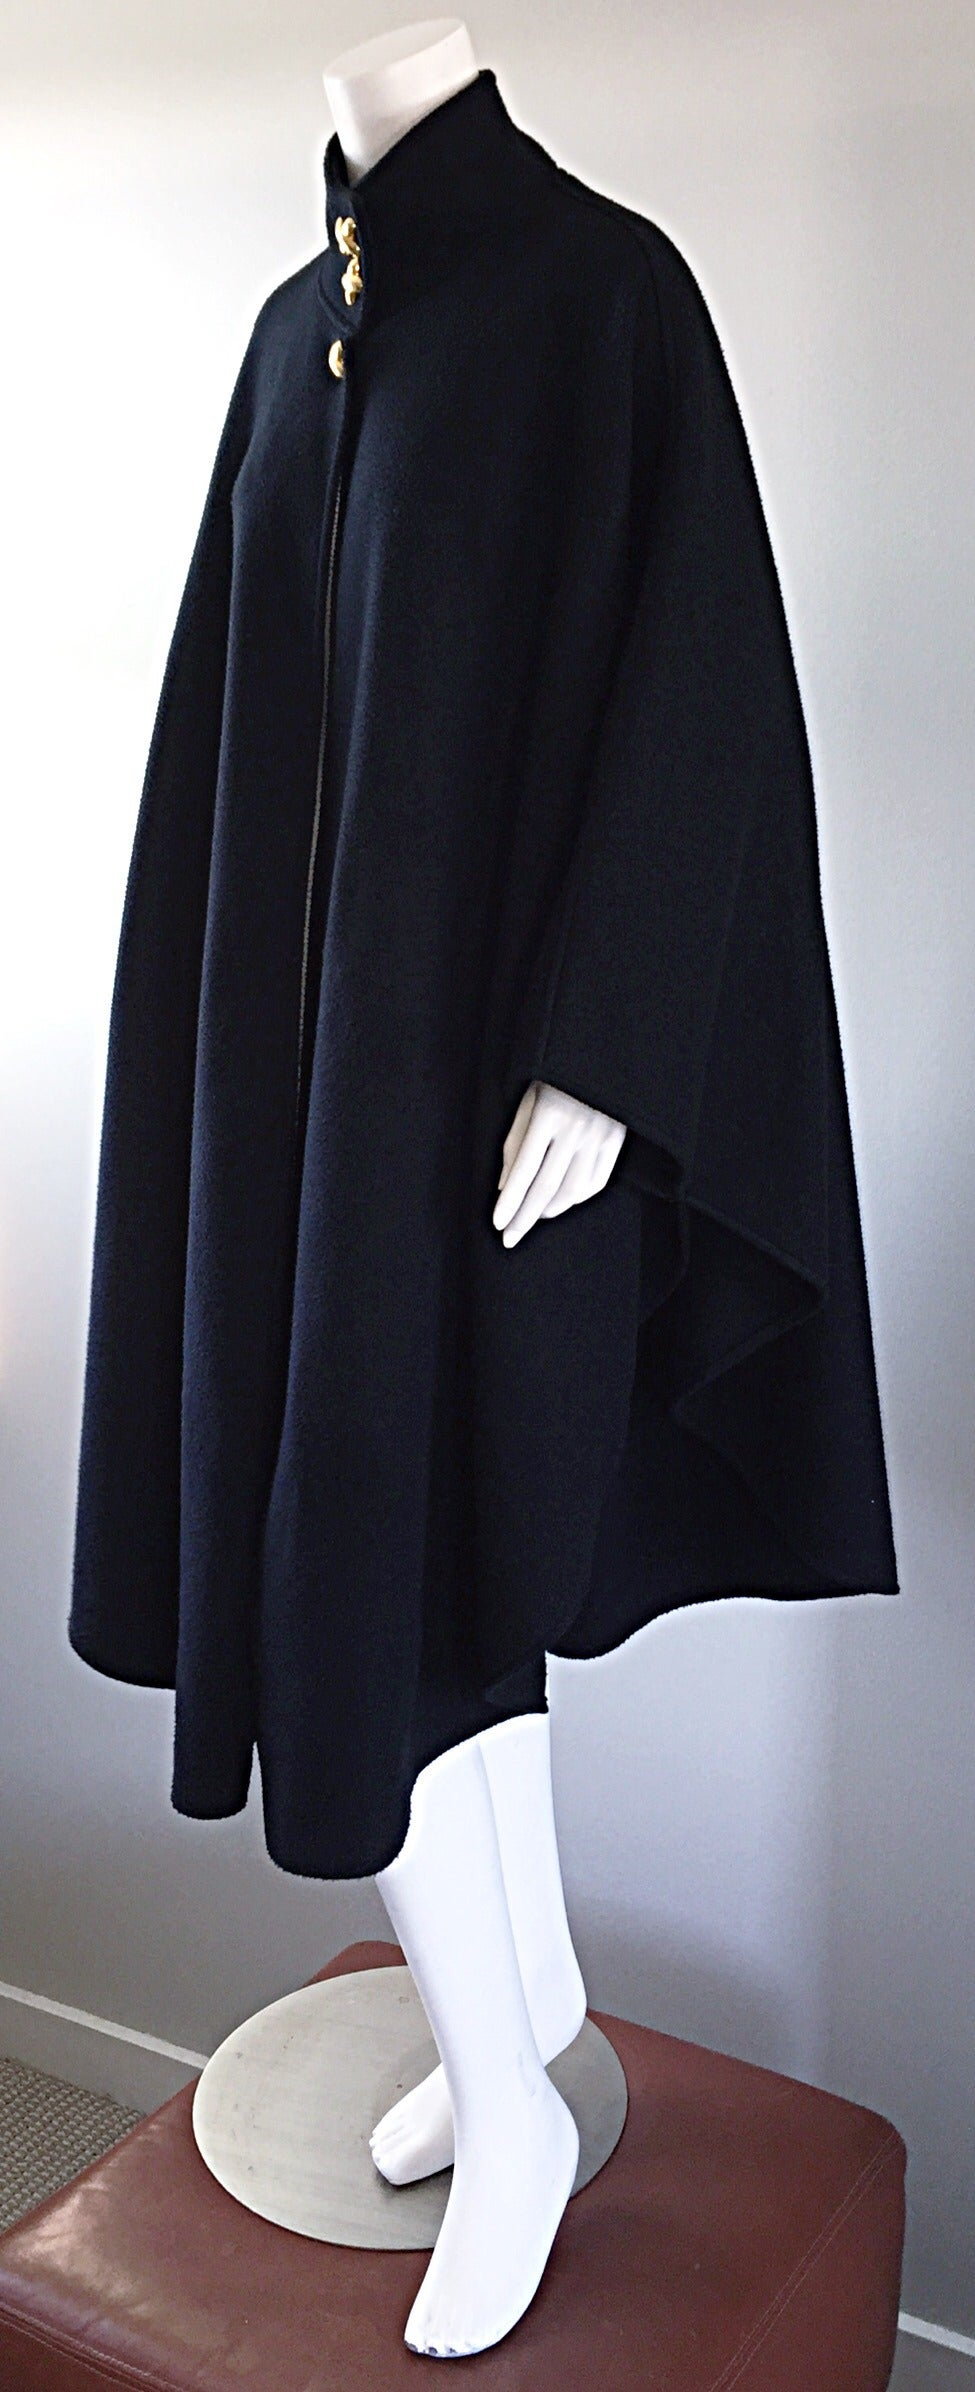 Vintage Lord & Taylor Black Fleece Cape Jacket w/ Gold ' Picasso ' Buttons In Excellent Condition For Sale In San Francisco, CA